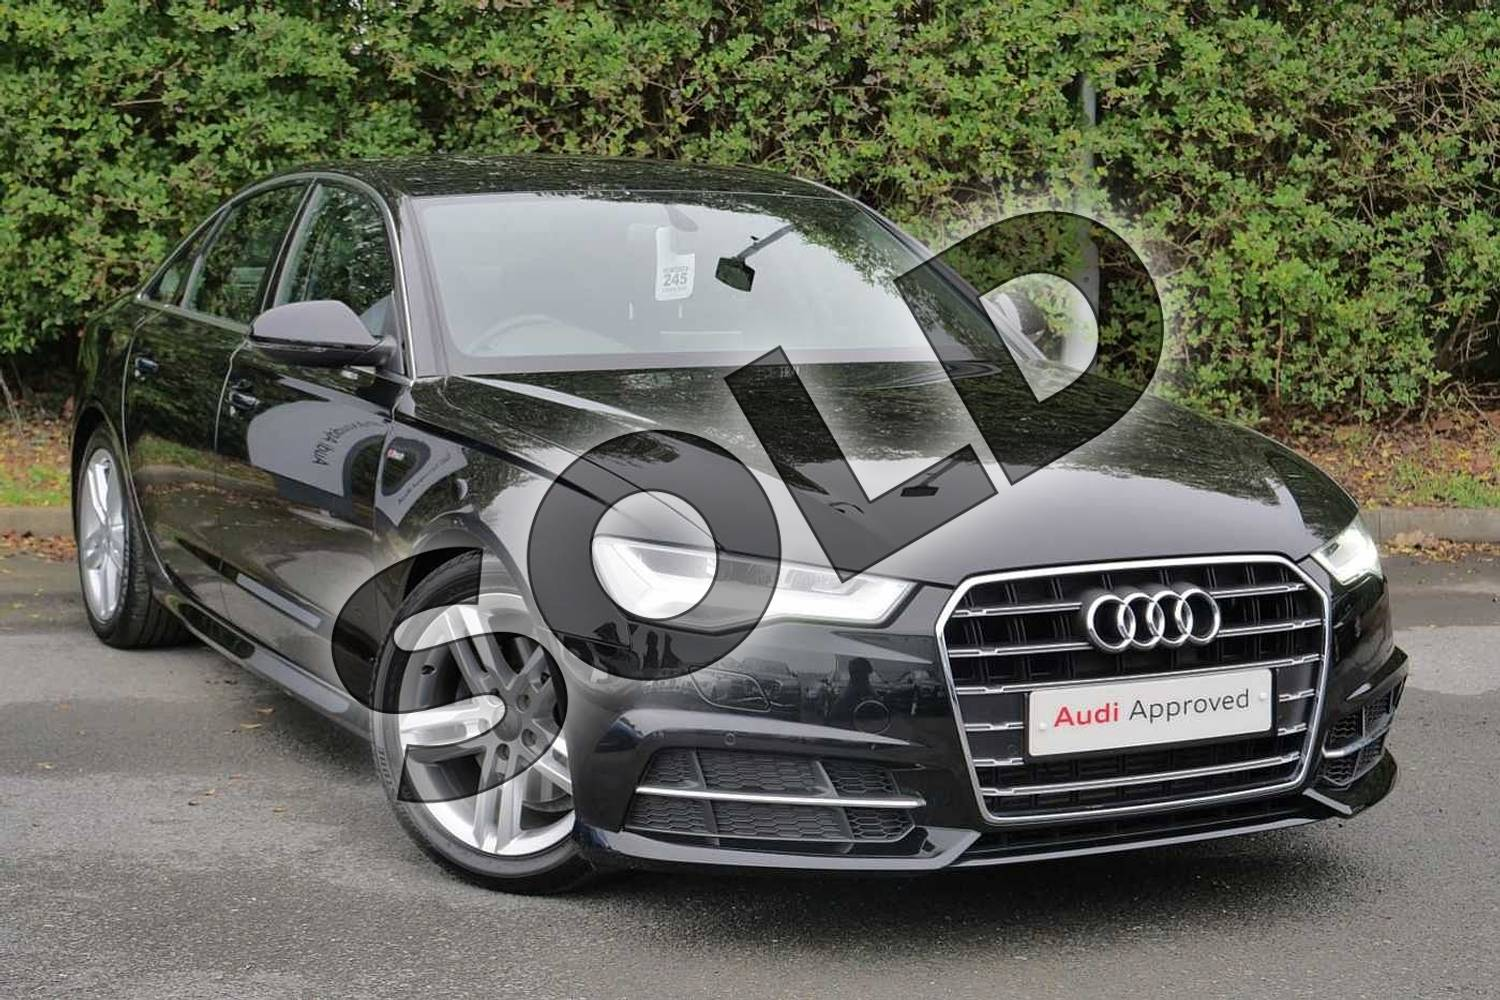 2018 Audi A6 Saloon 1.8 TFSI S Line 4dr S Tronic in Myth Black Metallic at Worcester Audi